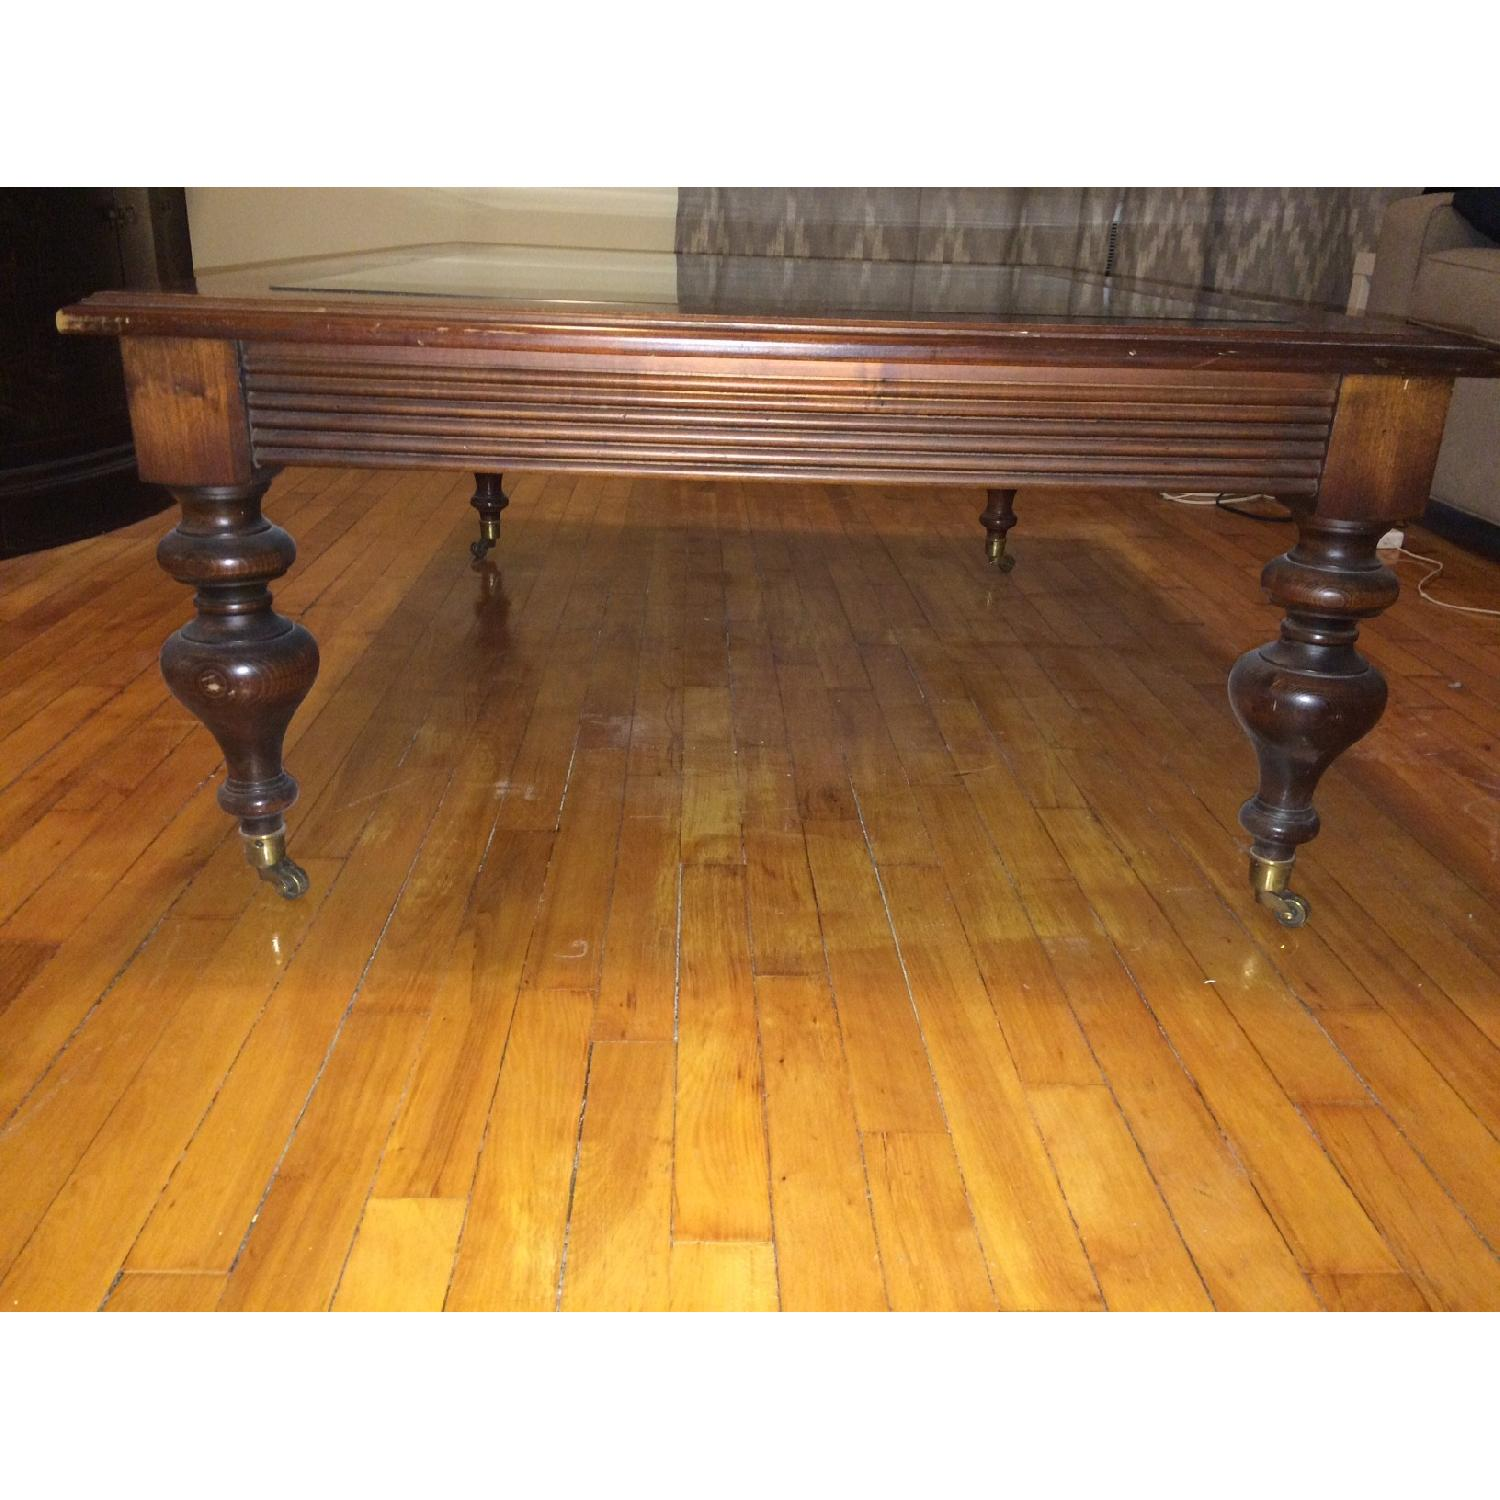 Used Ethan Allen Coffee Tables: Ethan Allen British Classics Collection Coffee Table With